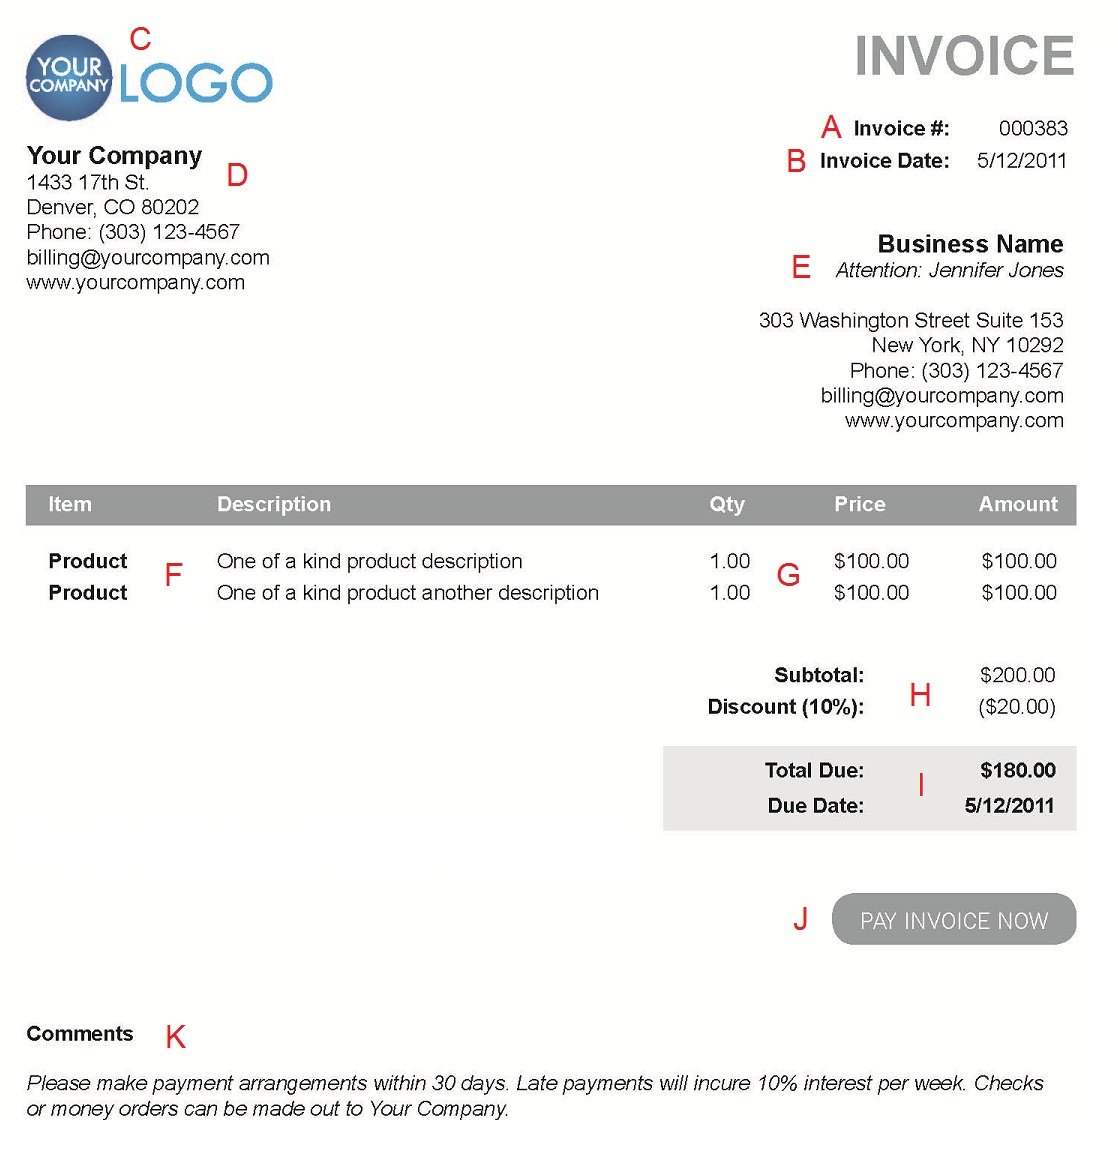 Coachoutletonlineplusus  Inspiring The  Different Sections Of An Electronic Payment Invoice With Foxy A  With Beautiful Online Invoices Free Template Also Hsbc Invoice Financing In Addition Pre Printed Invoice Books And How To Prepare A Invoice As Well As Free Invoice Management Software Additionally Invoices Excel From Paysimplecom With Coachoutletonlineplusus  Foxy The  Different Sections Of An Electronic Payment Invoice With Beautiful A  And Inspiring Online Invoices Free Template Also Hsbc Invoice Financing In Addition Pre Printed Invoice Books From Paysimplecom